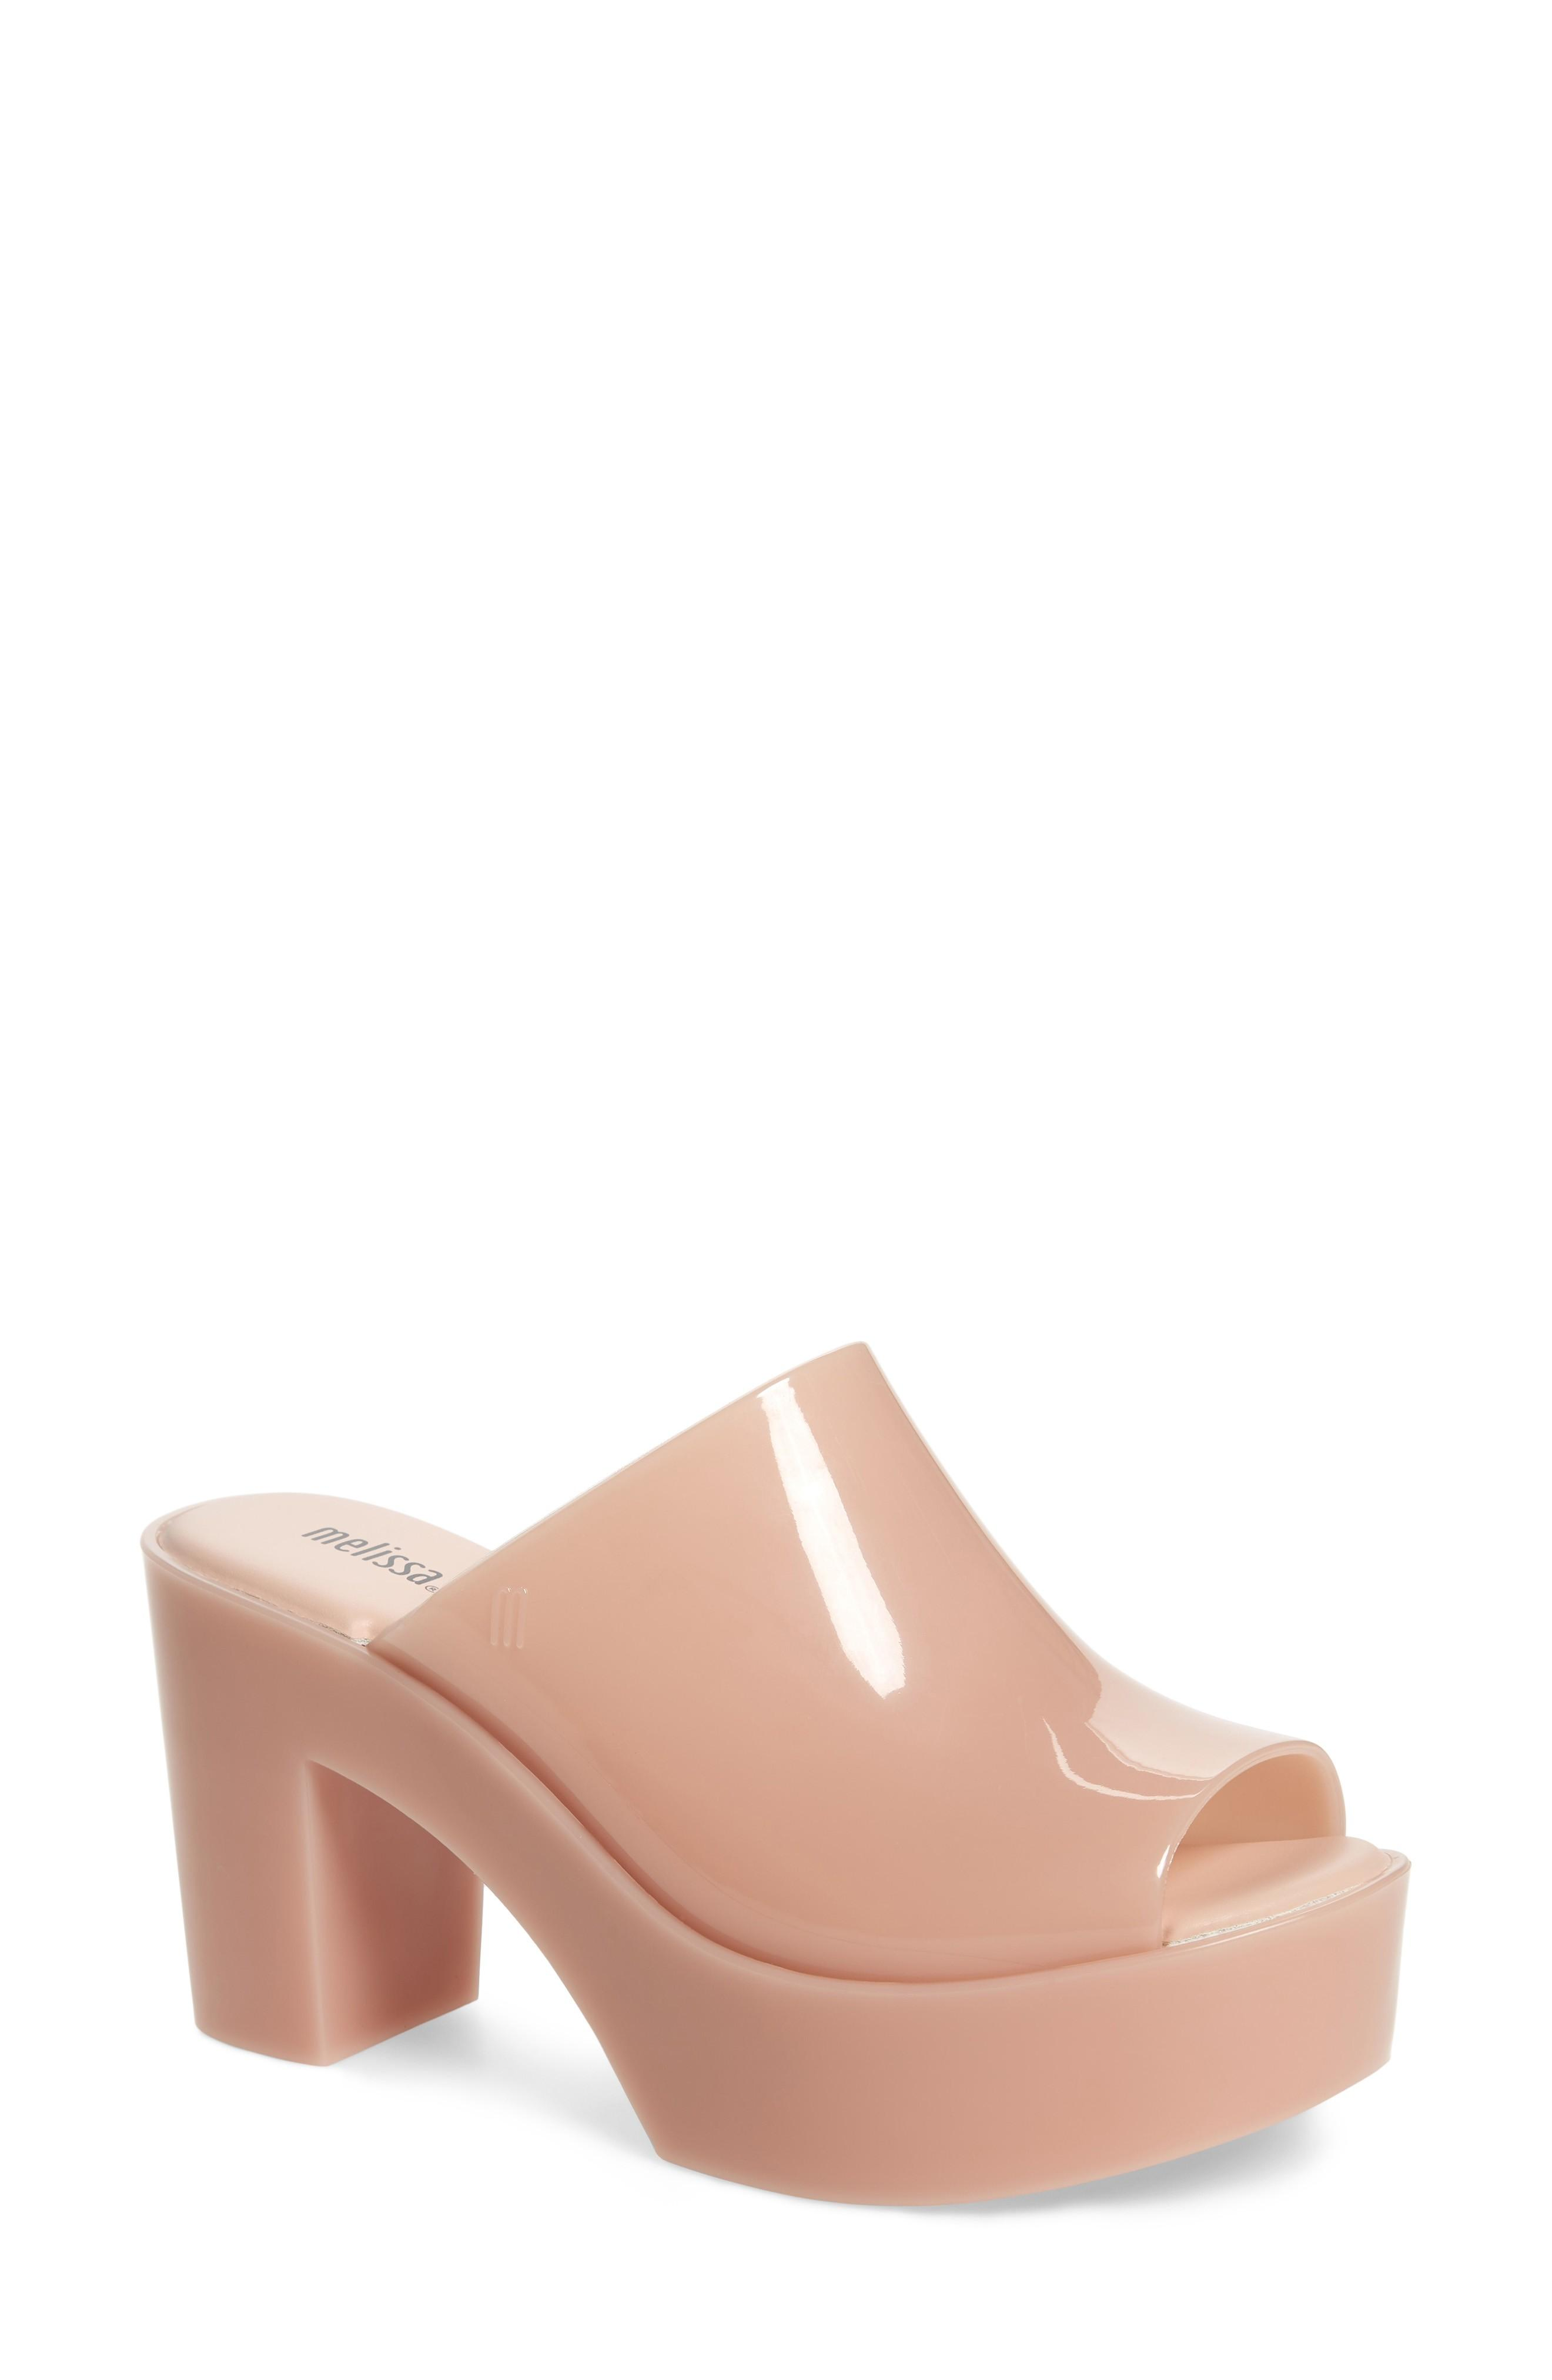 655837db179f ... curvy appeal of a well-cushioned mule molded from washable PVC with a  signature tutti-frutti scent. Style Name  Melissa Open Toe Platform Mule ( Women).